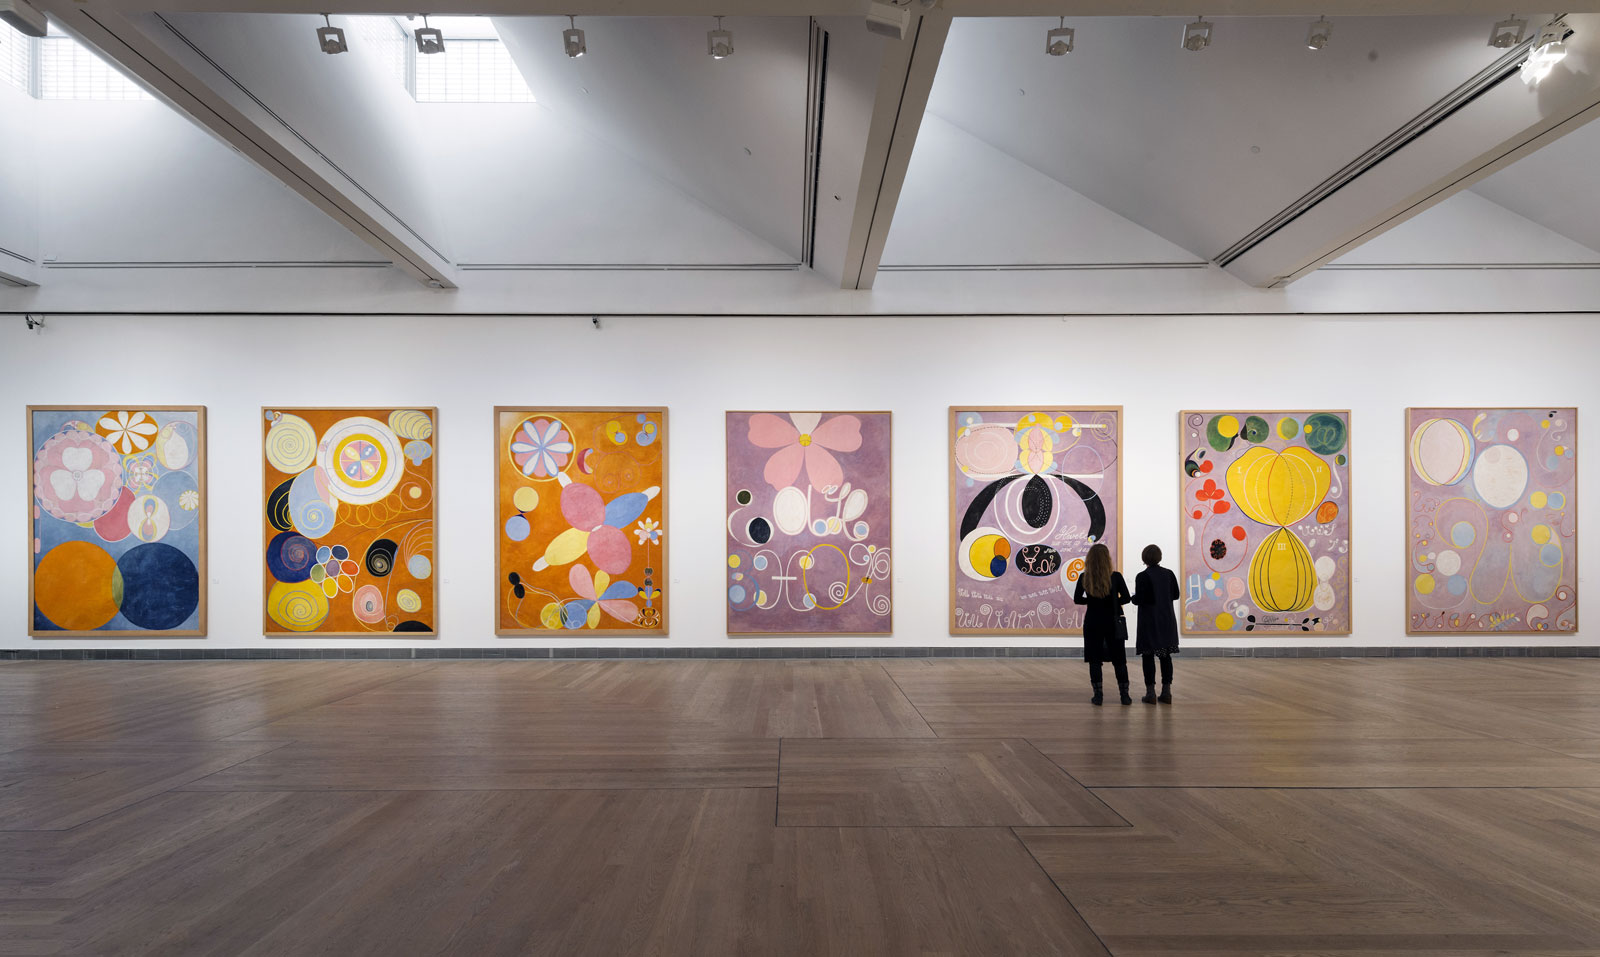 Exhibition hilma af klint a pioneer of abstraction at for Modern art gallery online